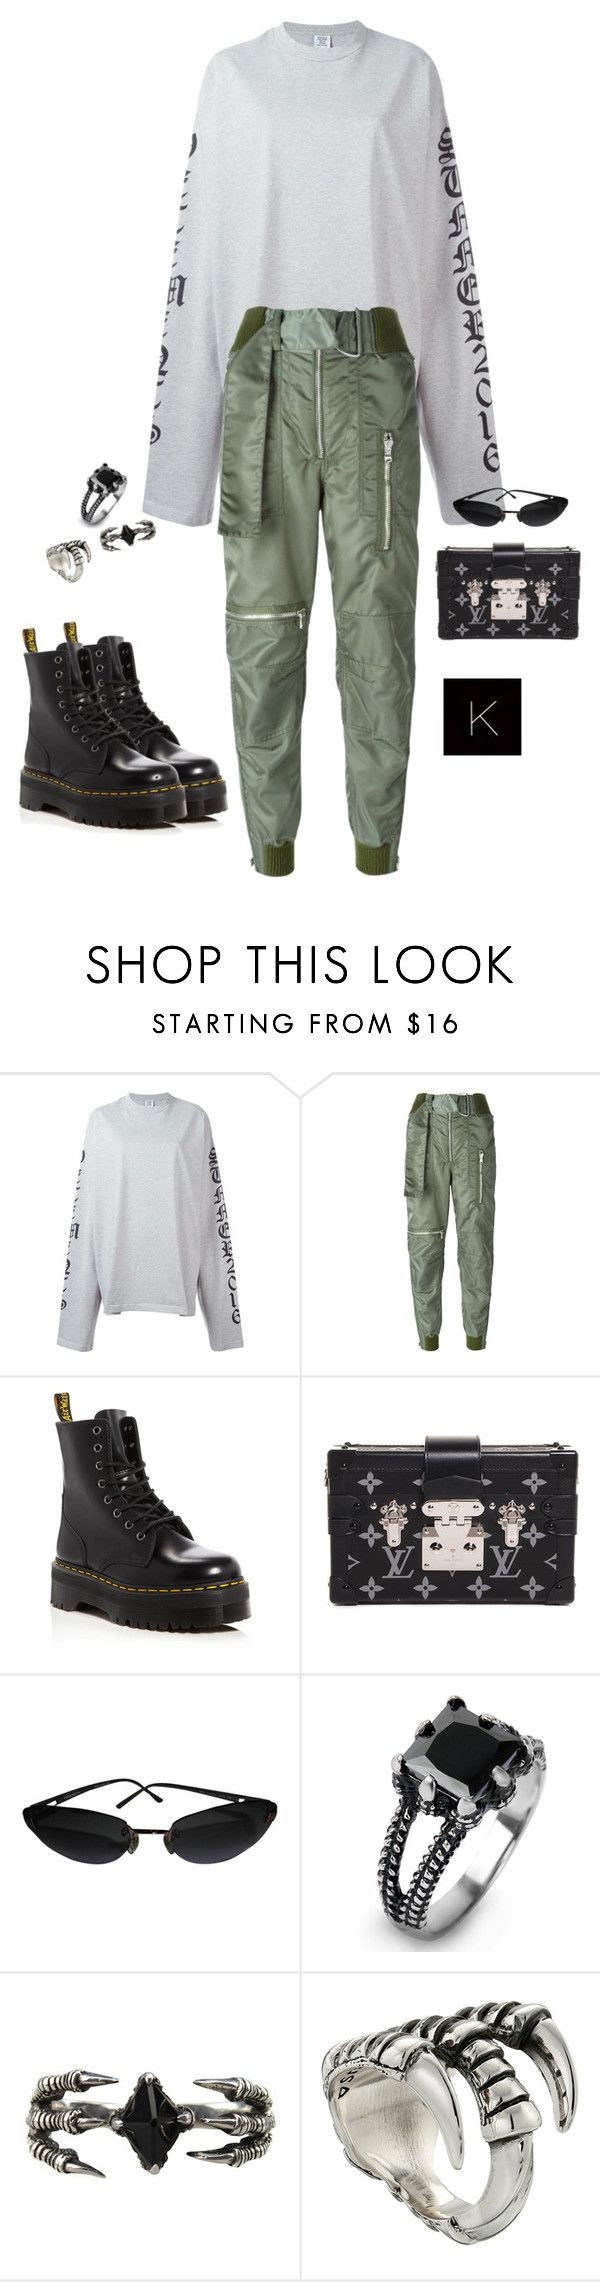 """""""Untitled #4107"""" by kimberlythestylist ❤ liked on Polyvore featuring Vetements, 3.1 Phillip Lim, Dr. Martens, Louis Vuitton, Chanel, West Coast Jewelry, KD2024 and King Baby Studio"""